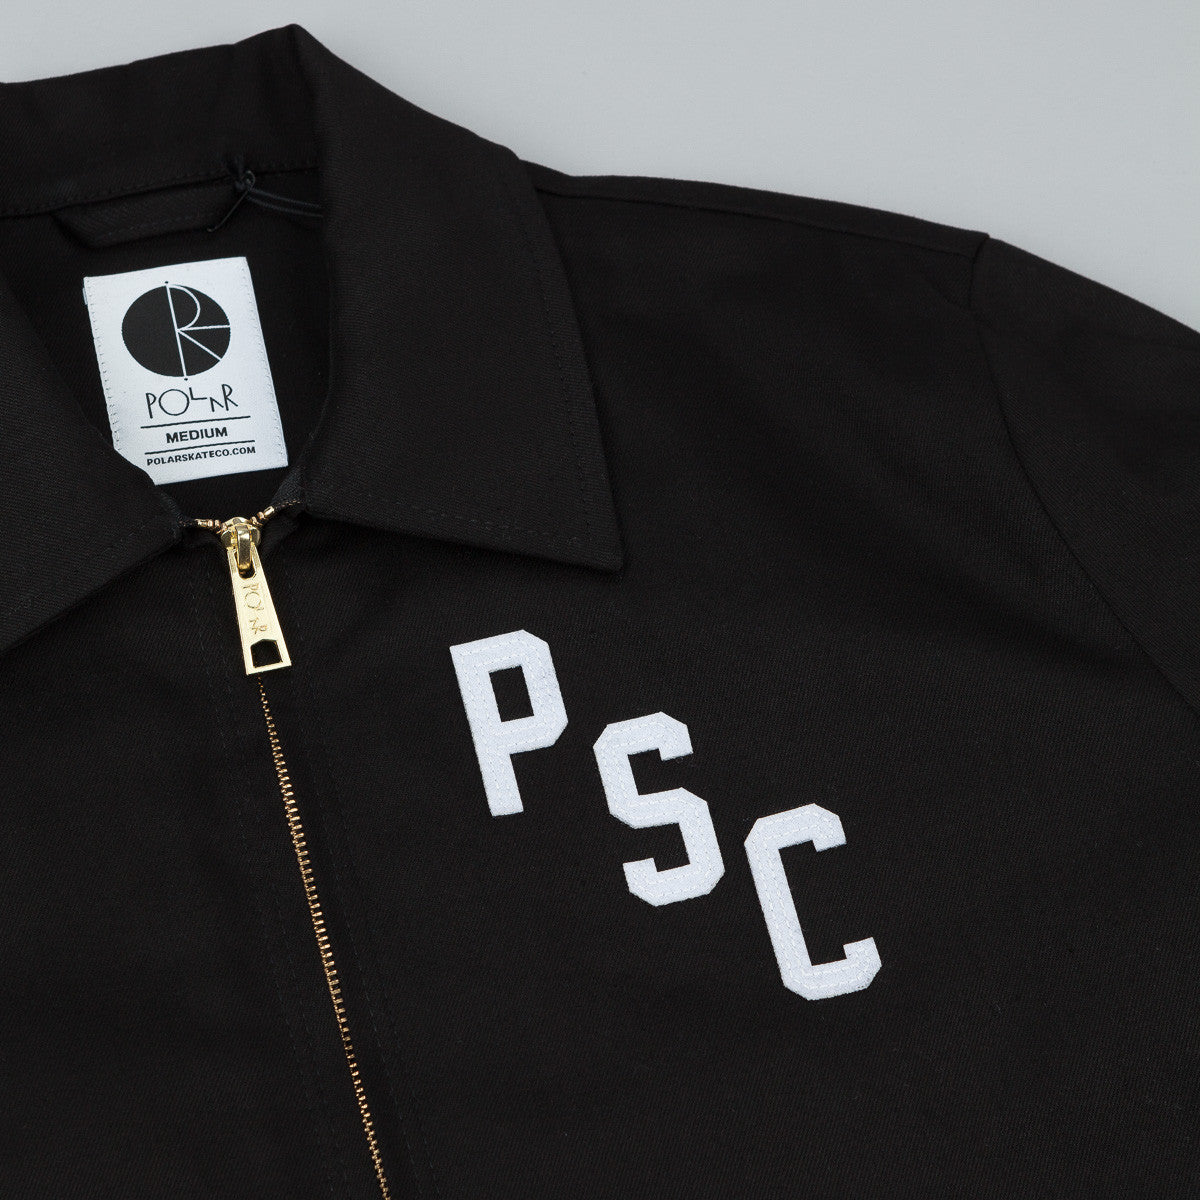 Polar PSC Ground Crew Jacket - Black / White